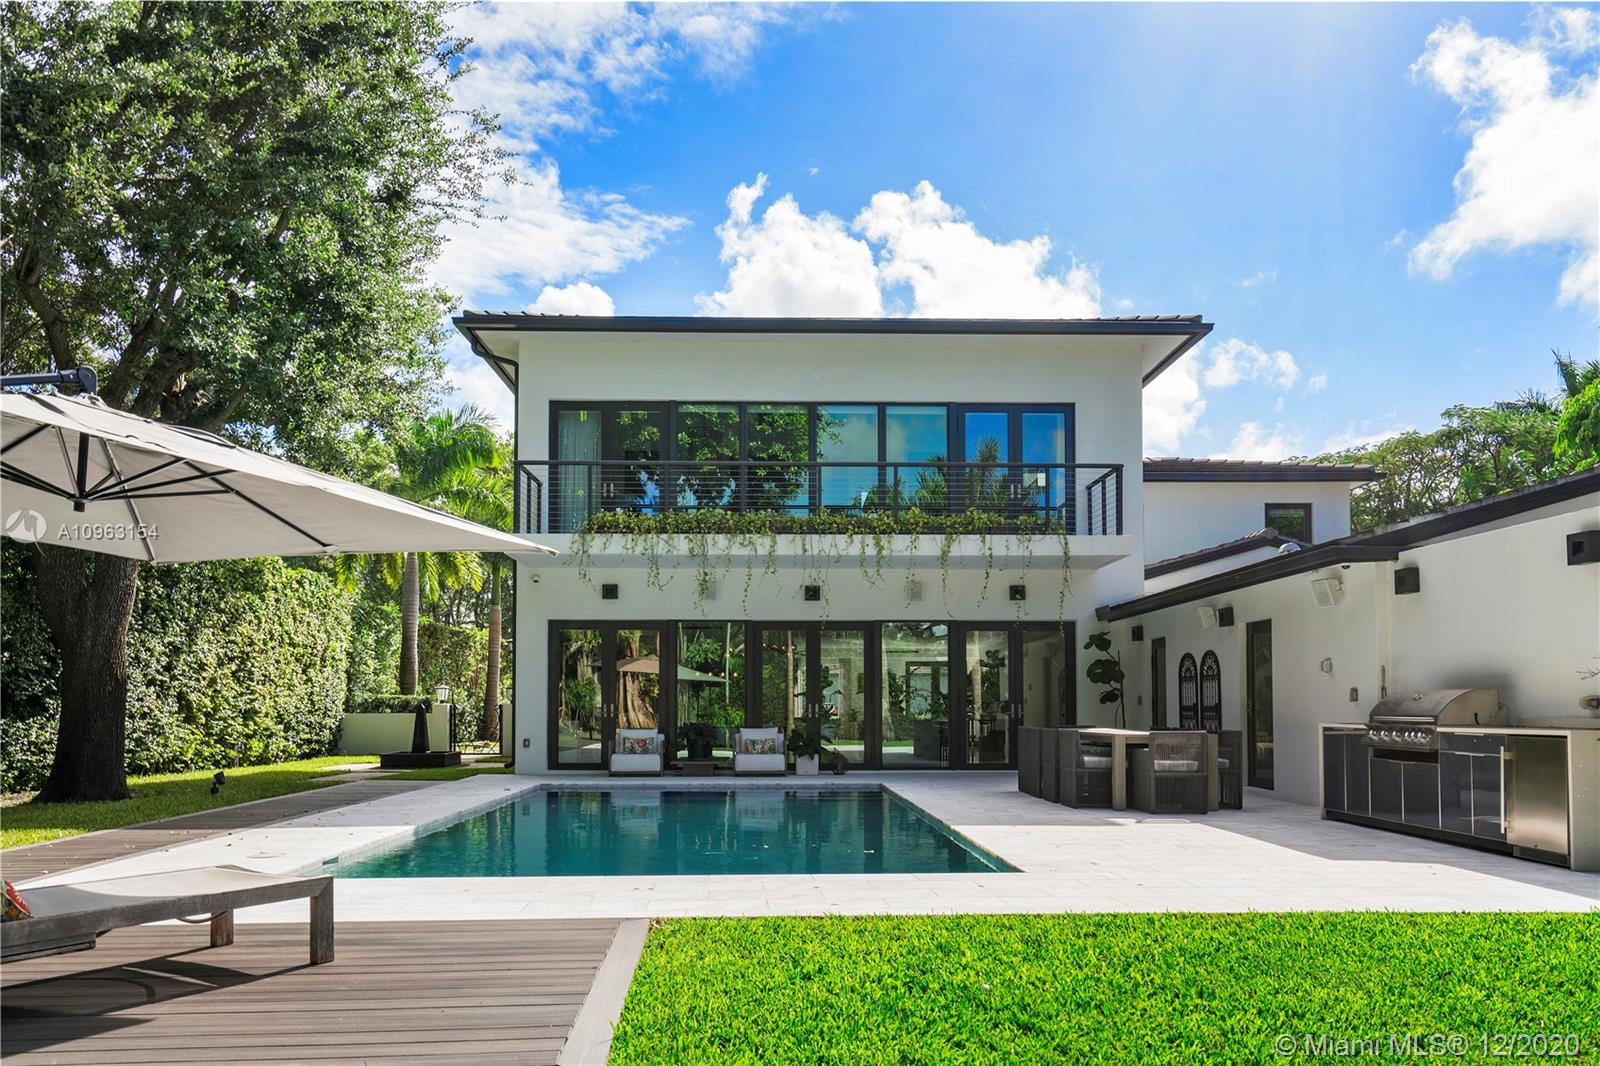 MODERN MEETS ELEGANCE ON THIS 2017 MASTERPIECE IN CELEBRITY FAVORED BAY POINT ENCLAVE. This spacious 5 Bedrooms, 5.5 Bathrooms + Nanny room home is ideal for families looking for functional yet sophisticated spaces. Exuberant native trees & perfectly manicured gardens surround the property. Custom forged gates allow for additional privacy. Full size generator, custom wine cellar, heated saline pool, cabana bath, top of the line appliances, integrated sound system, Low E impact windows & doors, outdoor kitchen, volume ceilings, CCTV cameras, garage, driveway for 10+ cars and more! EXCLUSIVE GATED NEIGHBORHOOD WITH PRIVATE ROADS PATROLLED BY SECURITY GUARDS 24/7. BAY POINT IS LOCATED CLOSE TO MIAMI'S BEST PRIVATE SCHOOLS, the Beach, Design District, Midtown, Wynwood, Museums & Art District.